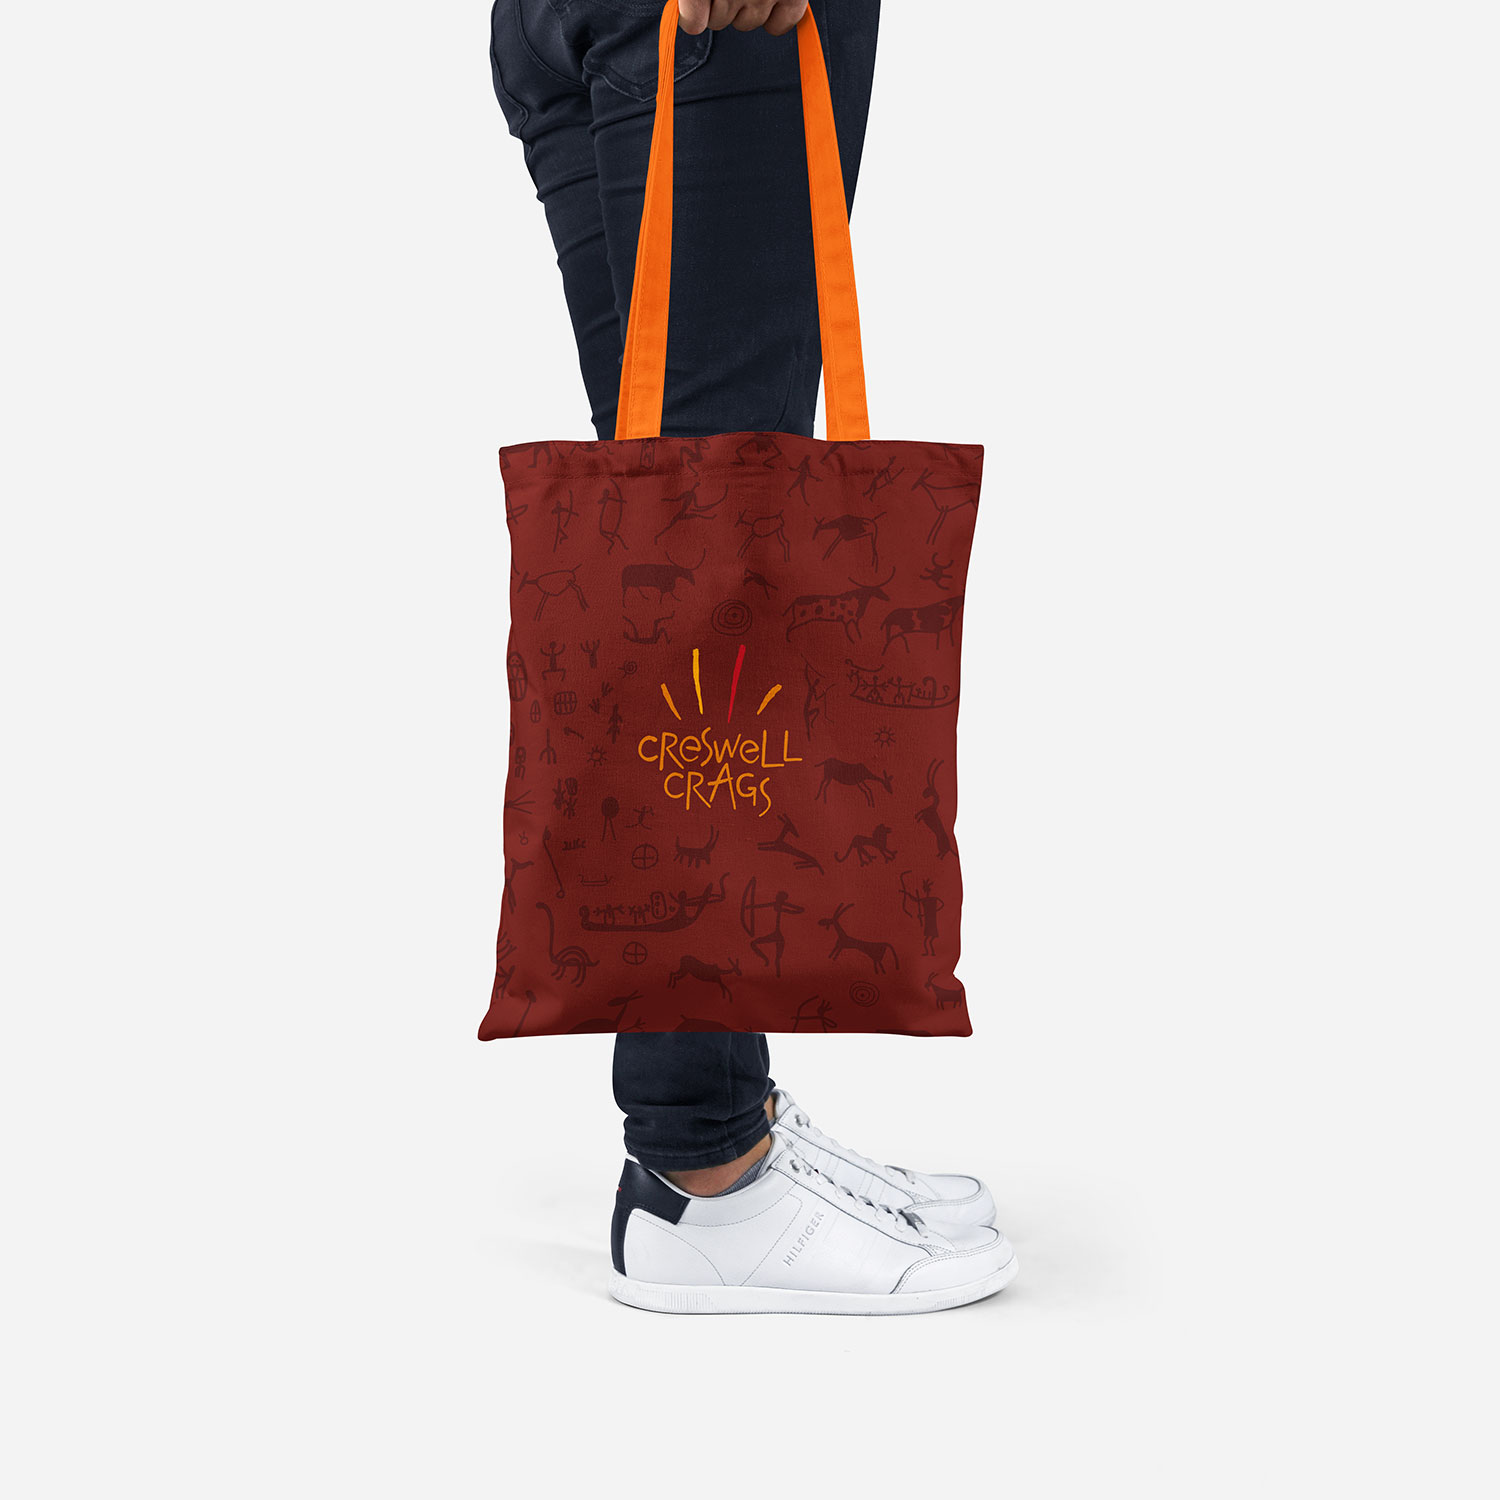 Creswell Crags branded bag